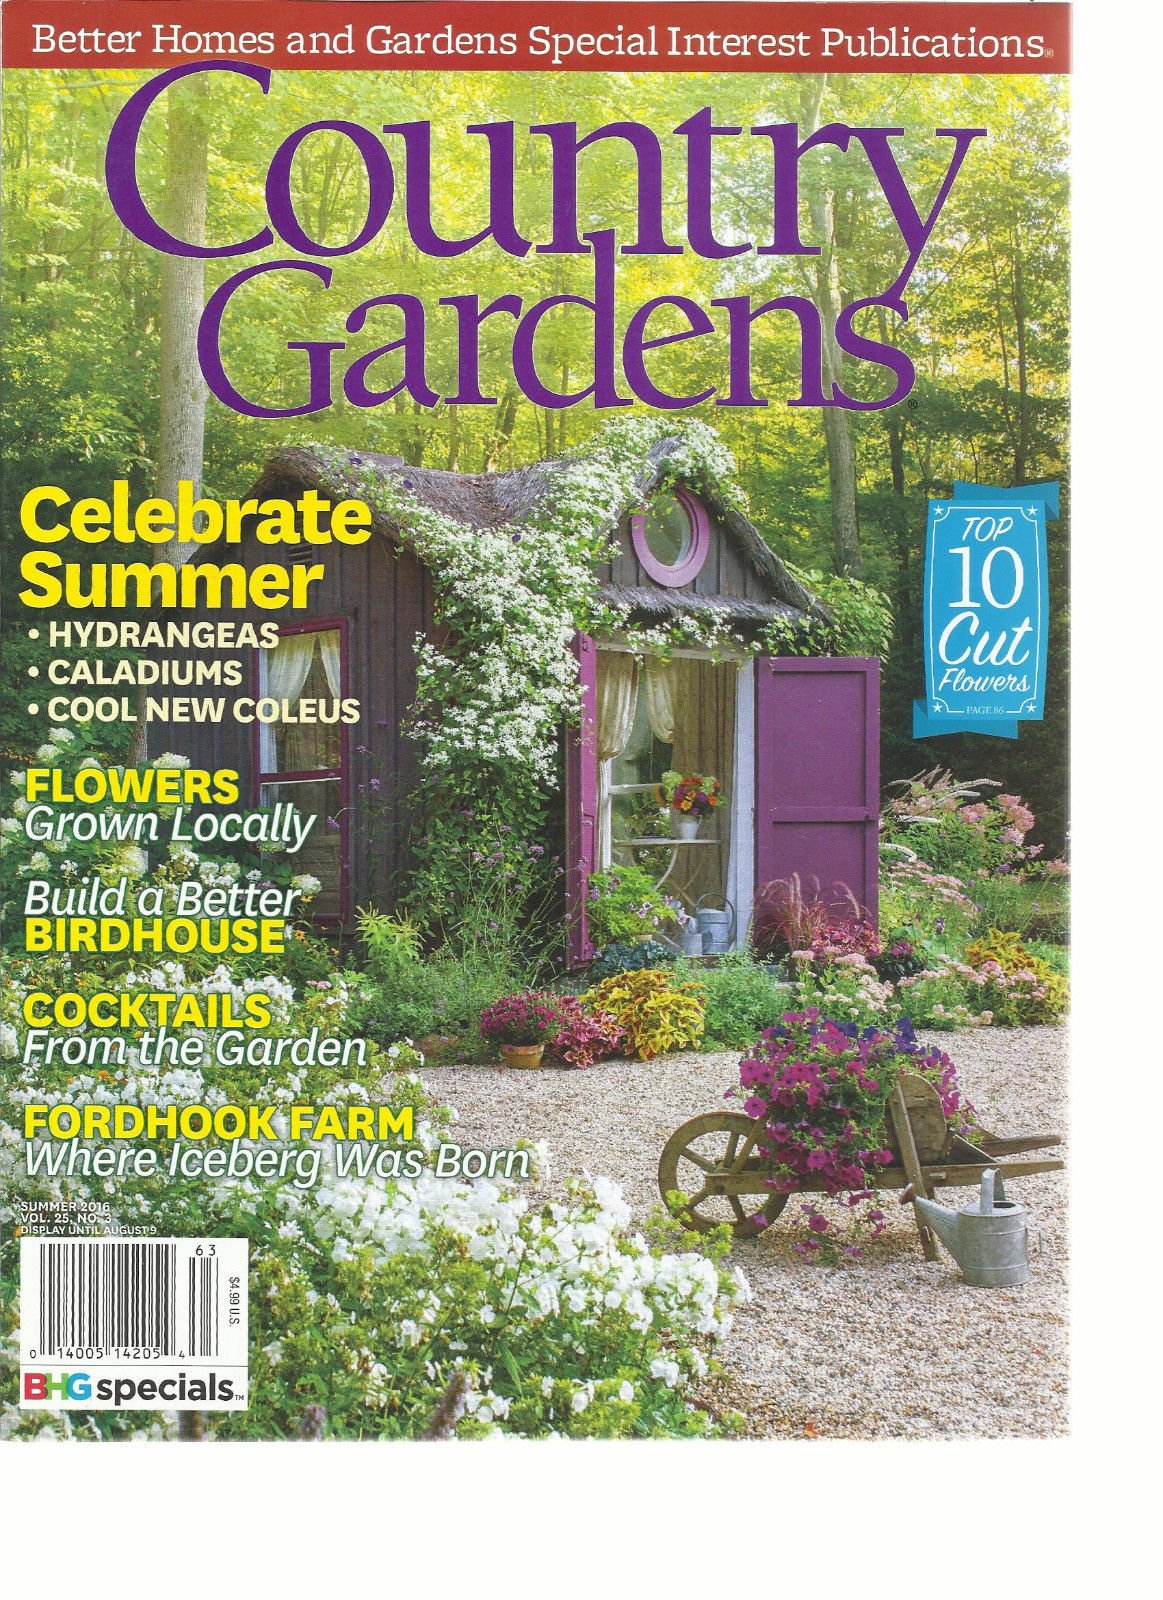 COUNTRY GARDENS MAGAZINE, SUMMER, 2016 VOL. 25 NO.03 TOP 10 CUT FLOWERS